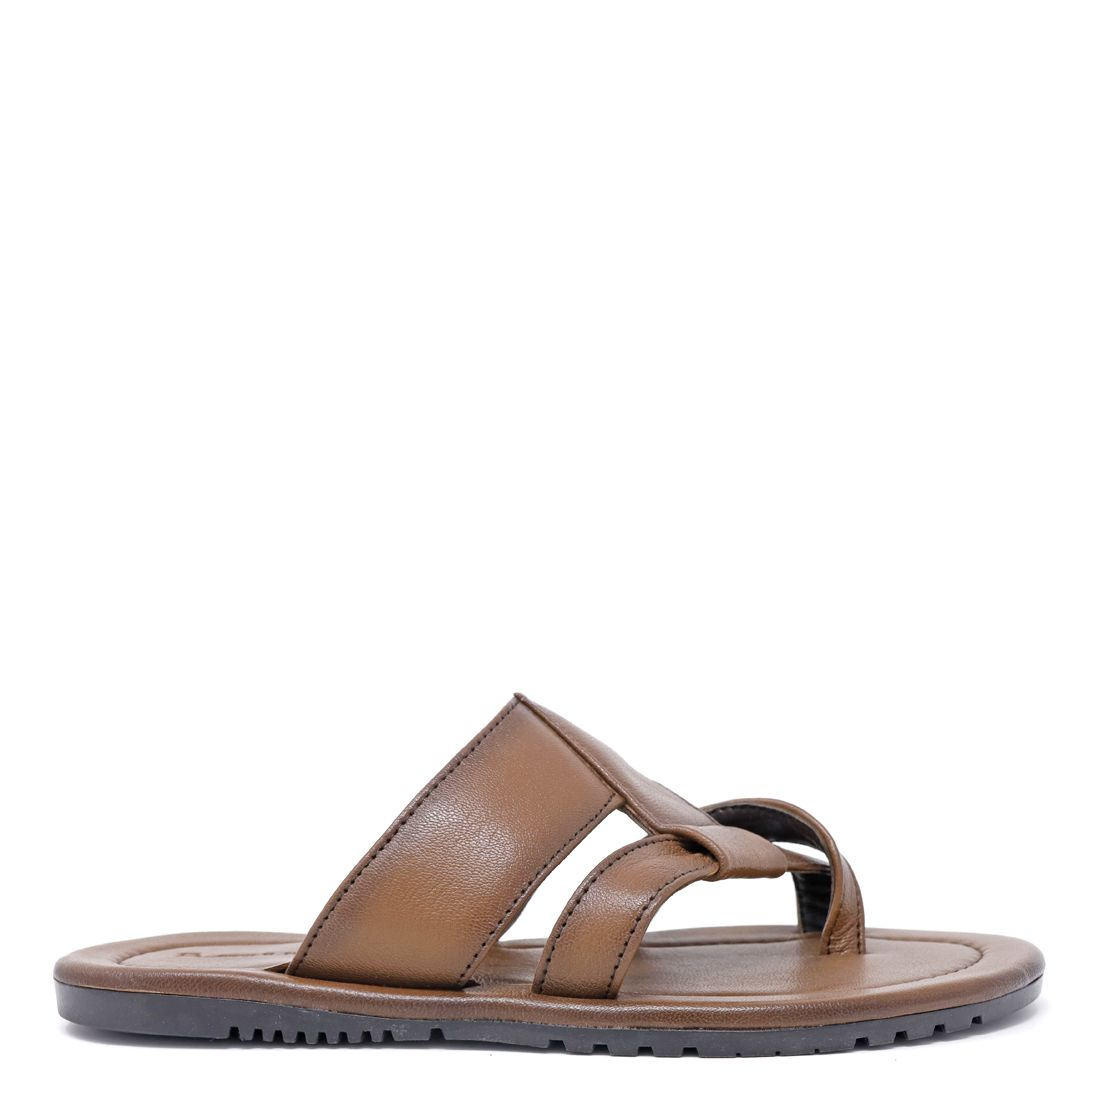 STYLE FACTOR TAN CASUAL CHAPPALS FOR MEN SF-A26